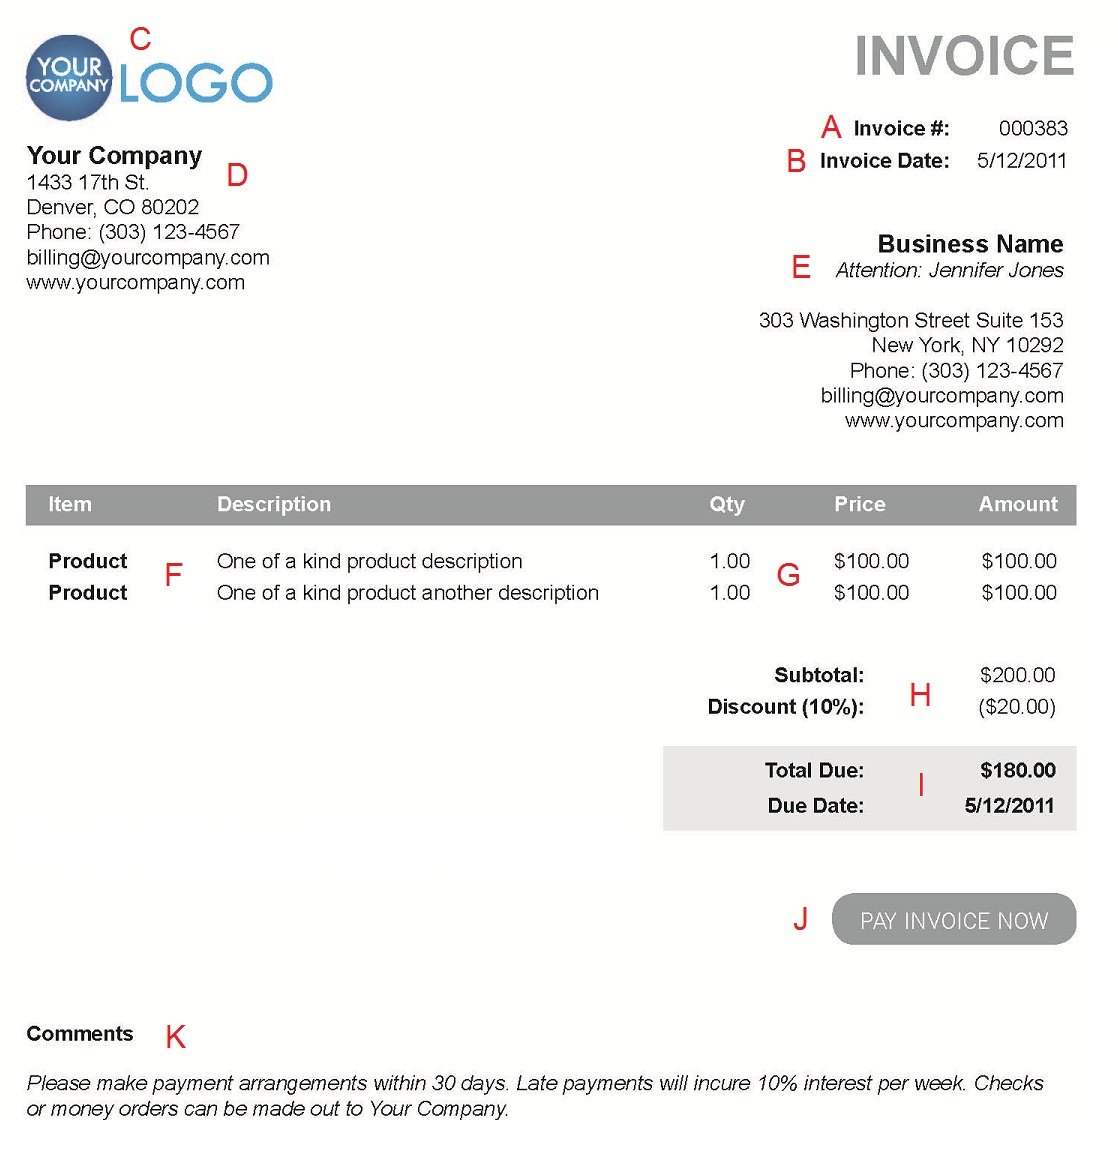 Occupyhistoryus  Personable The  Different Sections Of An Electronic Payment Invoice With Interesting A  With Breathtaking Vat On Invoice Also Software To Create Invoices In Addition Statement Of Invoice And Overdue Invoice Notice As Well As Invoice Template Nz Excel Additionally Pre Forma Invoice From Paysimplecom With Occupyhistoryus  Interesting The  Different Sections Of An Electronic Payment Invoice With Breathtaking A  And Personable Vat On Invoice Also Software To Create Invoices In Addition Statement Of Invoice From Paysimplecom